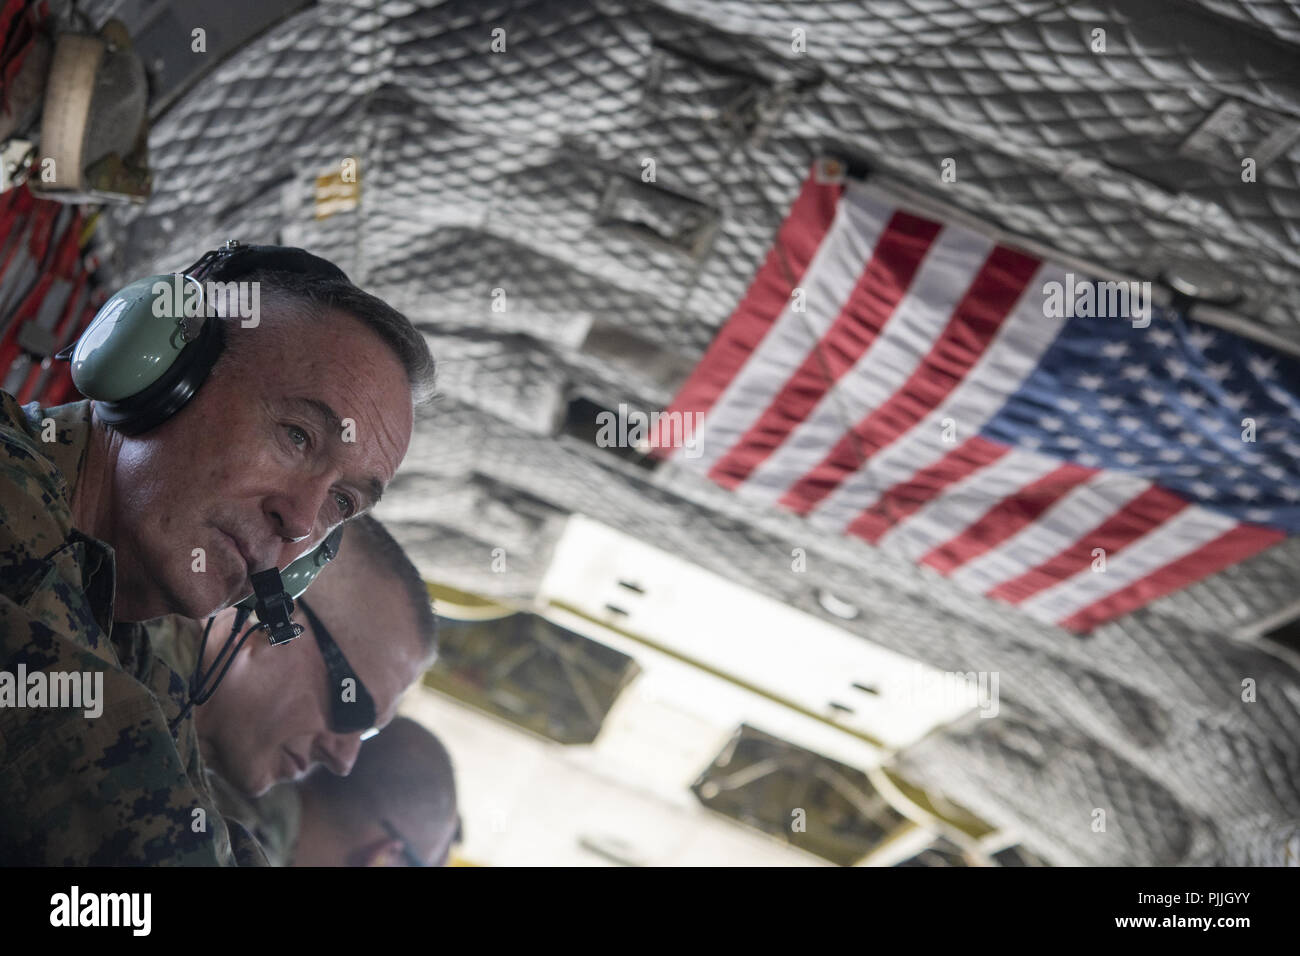 Marine Corps Gen. 6th Sep, 2018. Joe Dunford, chairman of the Joint Chiefs of Staff, rides aboard a CH-47 Chinook in Kabul, Afghanistan, Sept. 7, 2018. (DoD Photo by Navy Petty Officer 1st Class Dominique A. Pineiro) US Joint Staff via globallookpress.com Credit: Us Joint Staff/Russian Look/ZUMA Wire/Alamy Live News Stock Photo